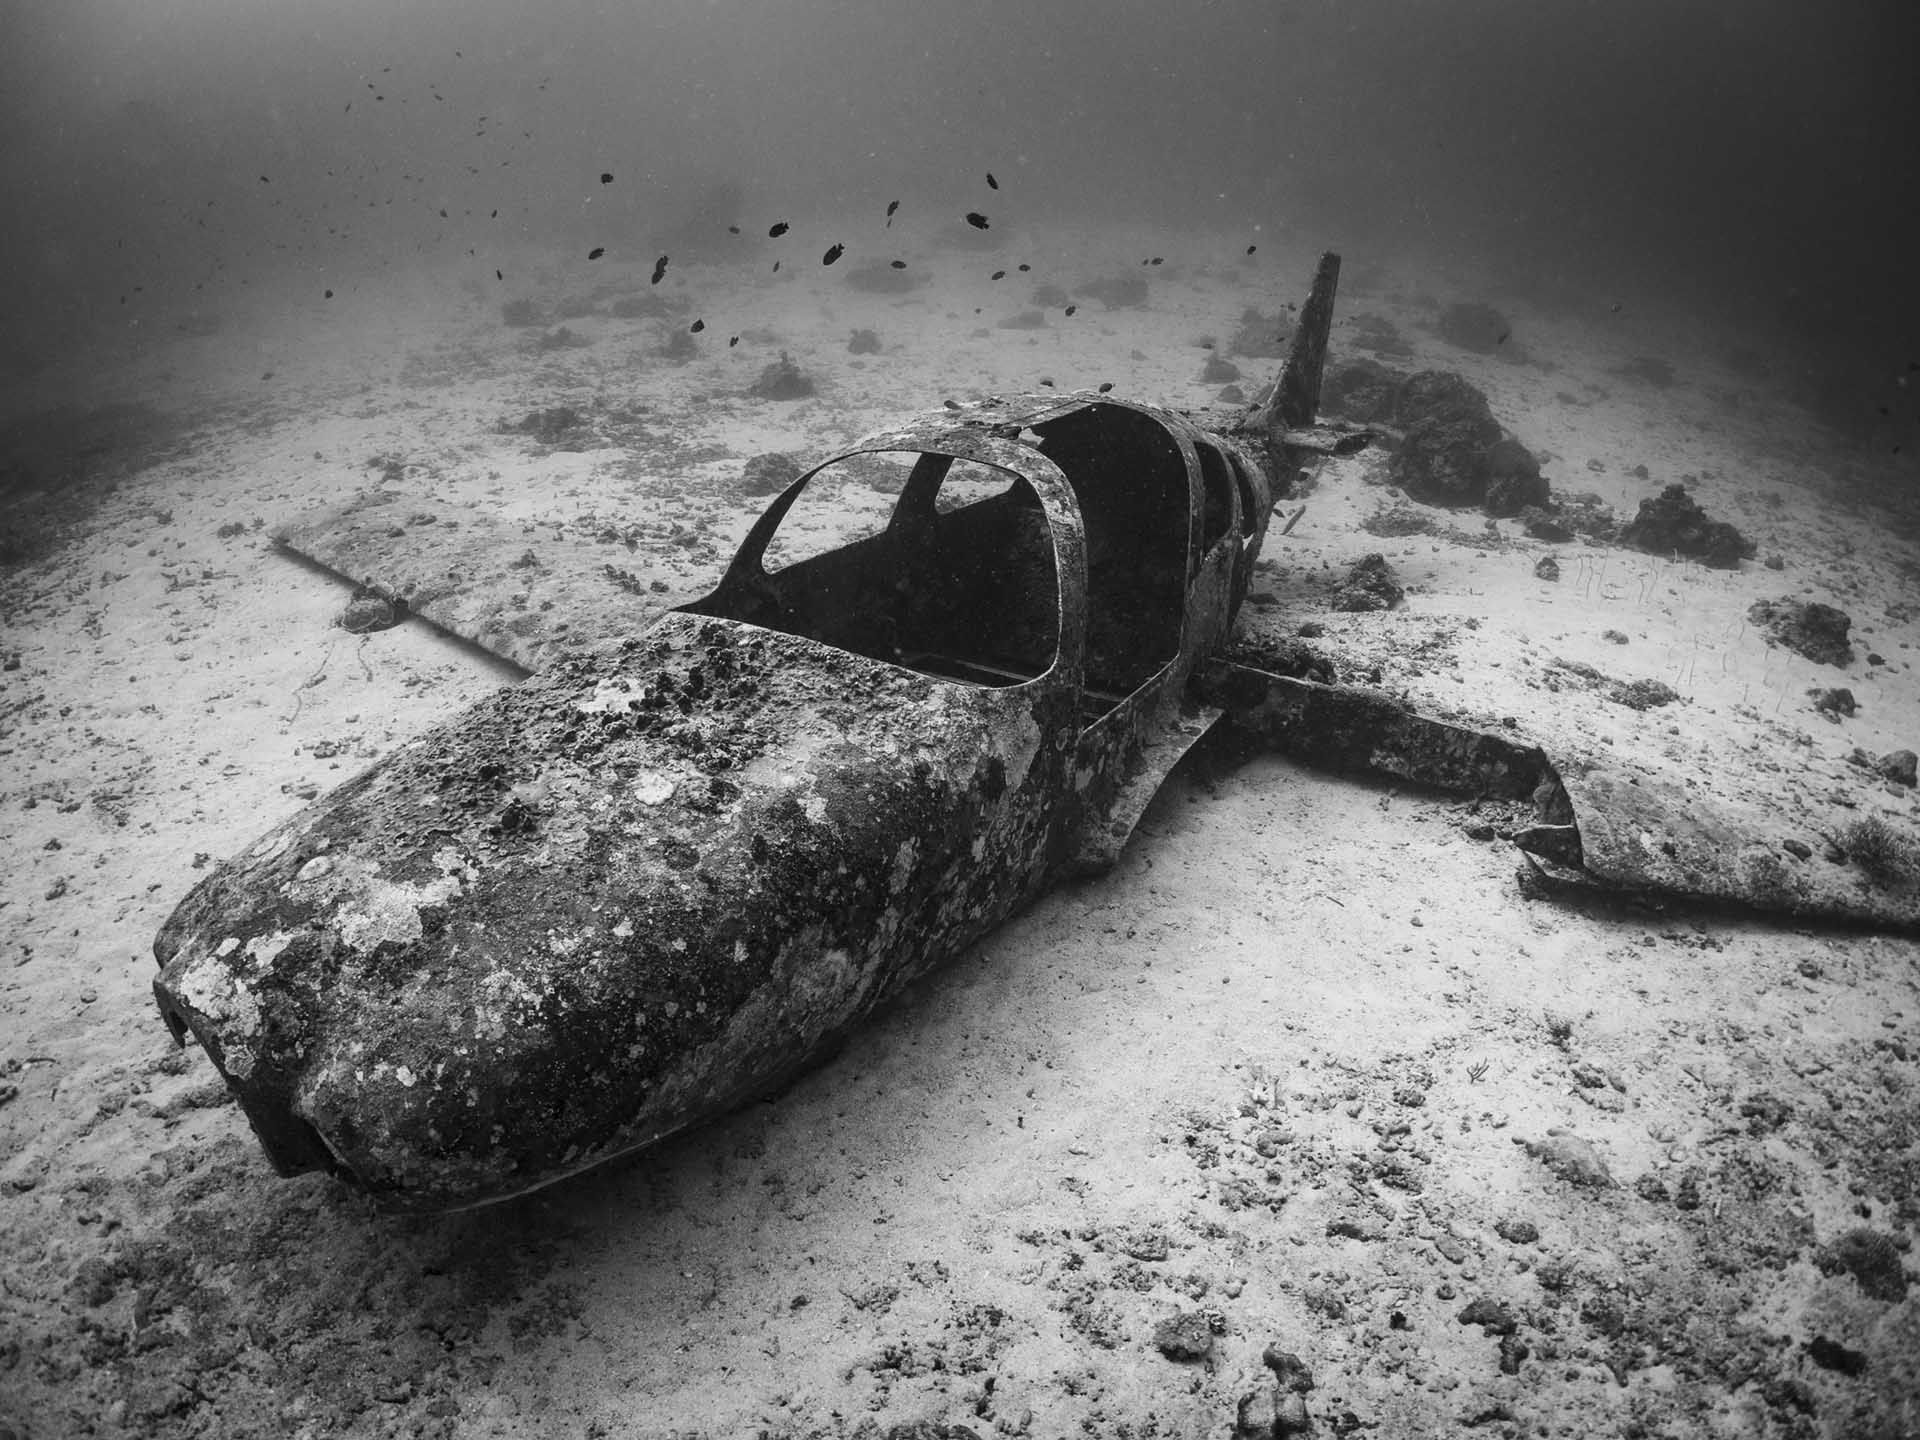 wwii airplane on reef